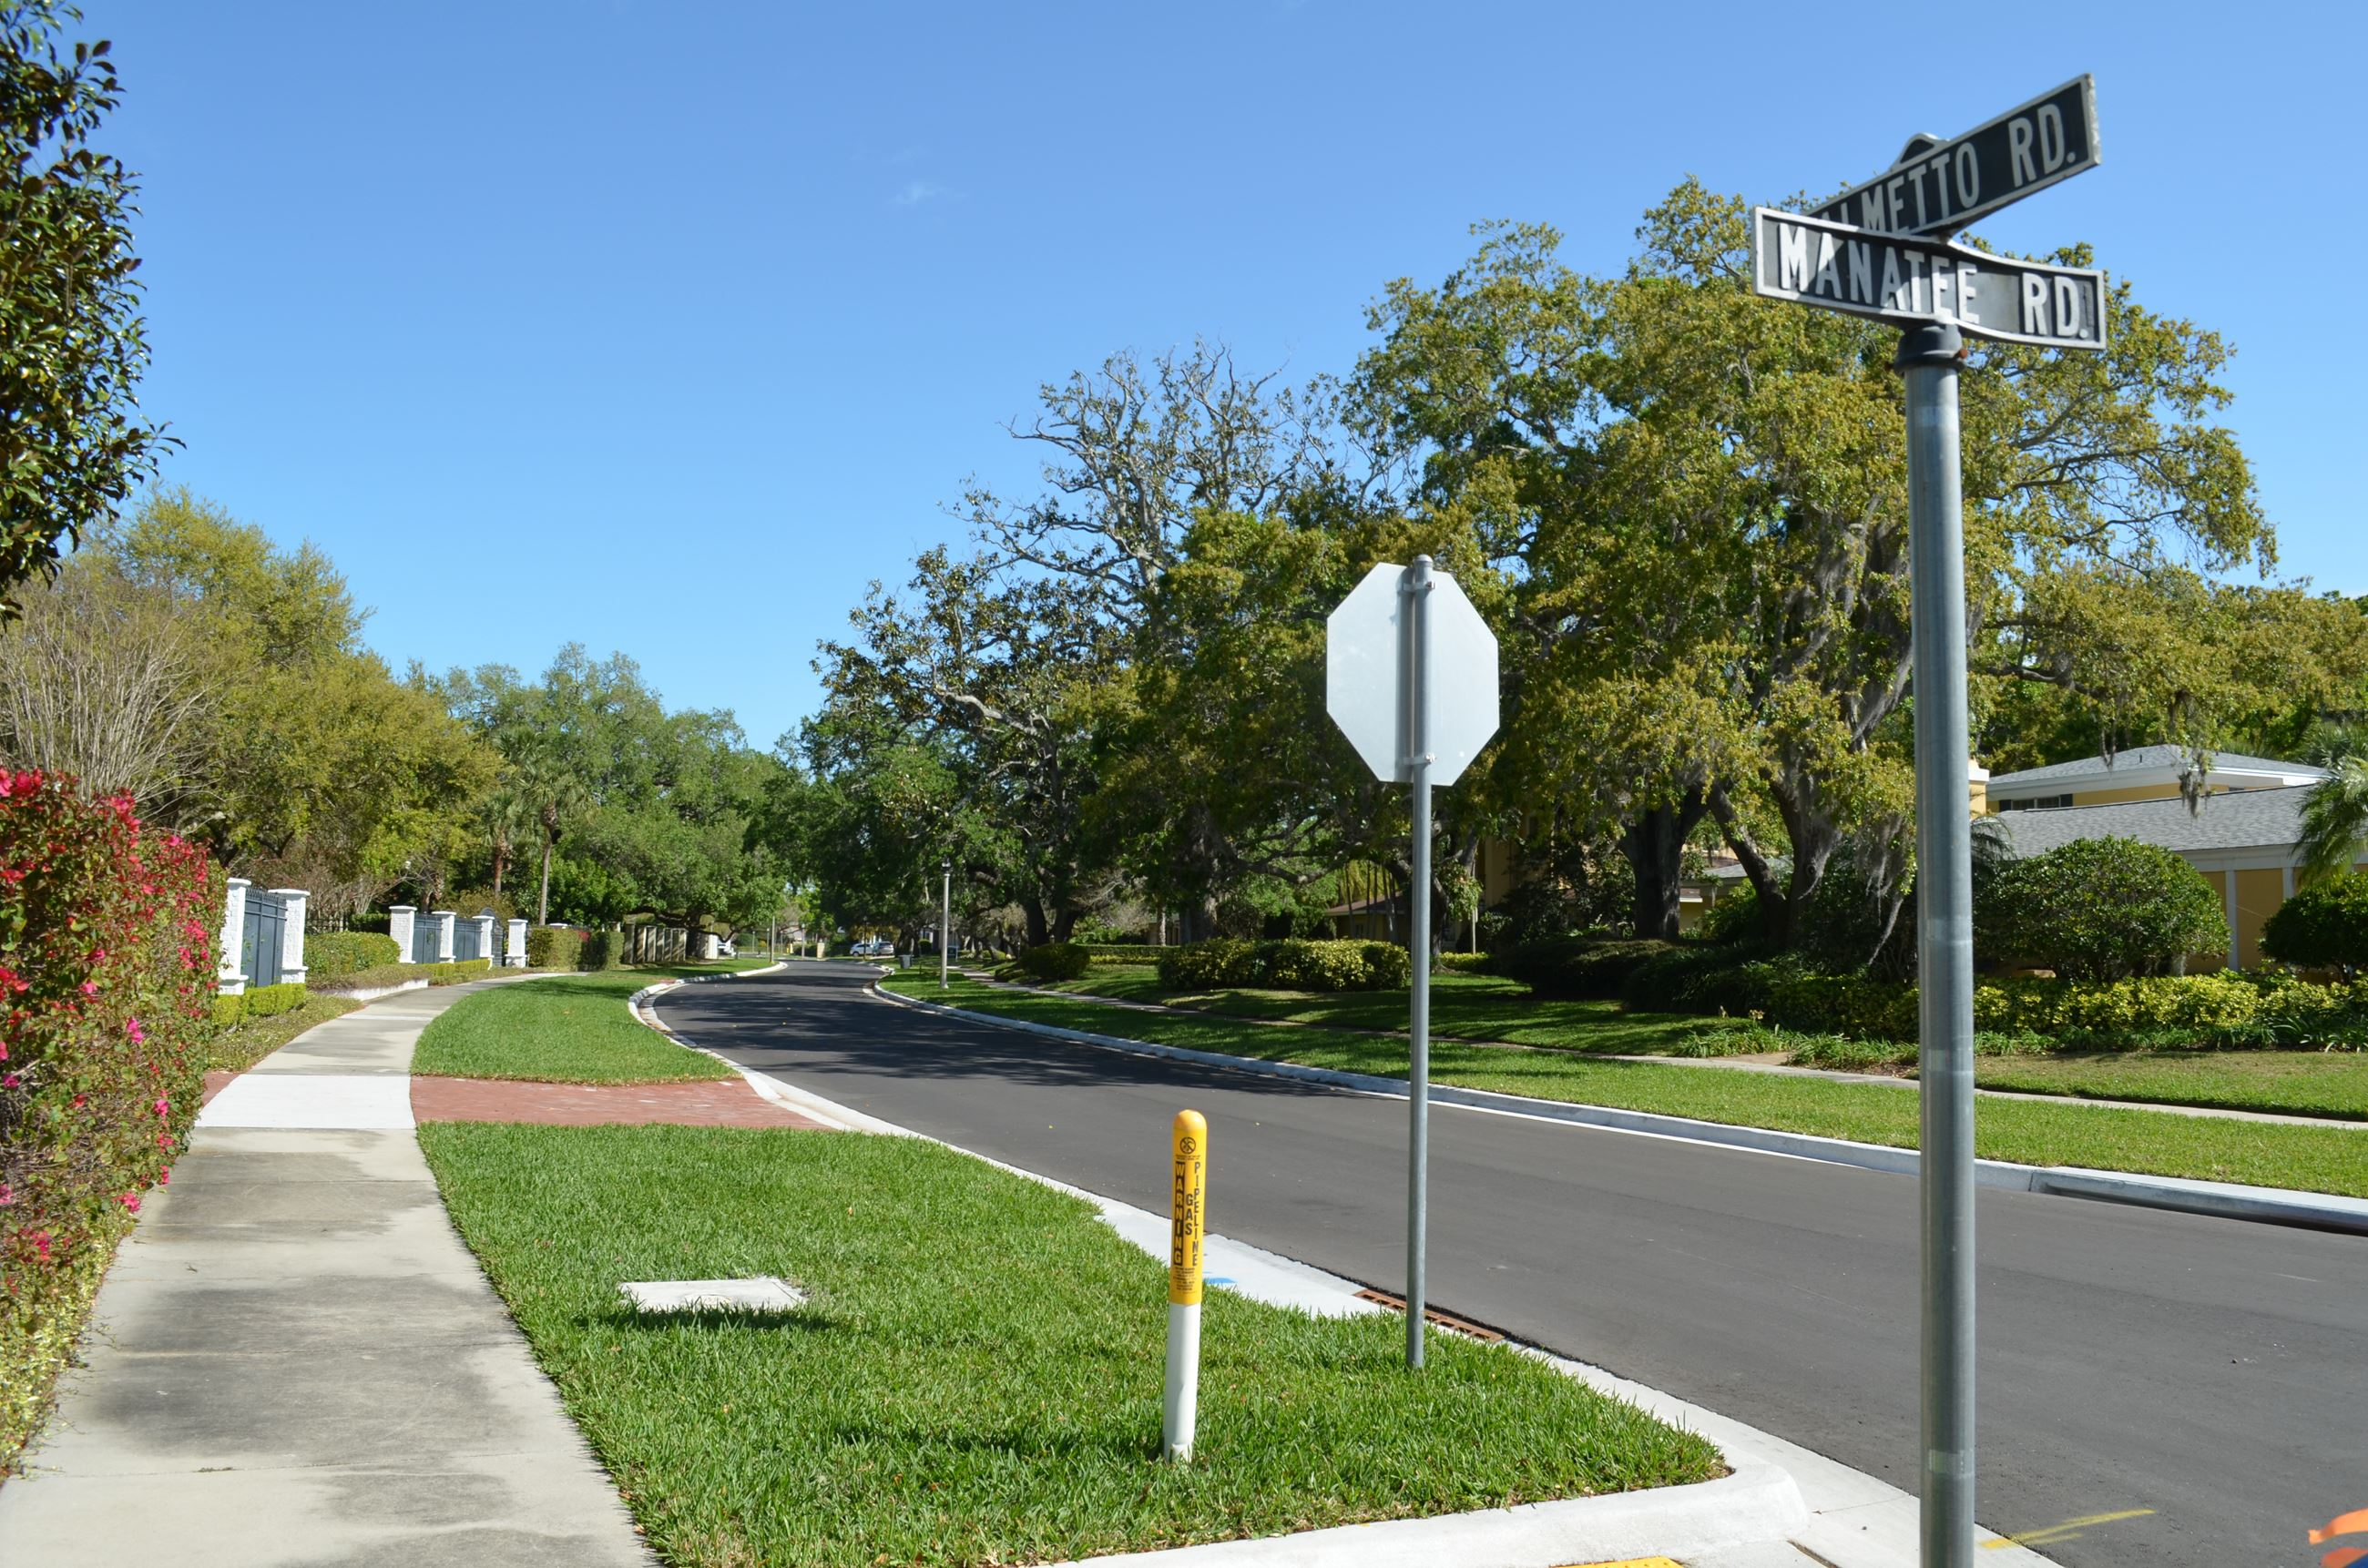 The street sign for the intersection o Palmetto Road and Manatee Road with the completed project in